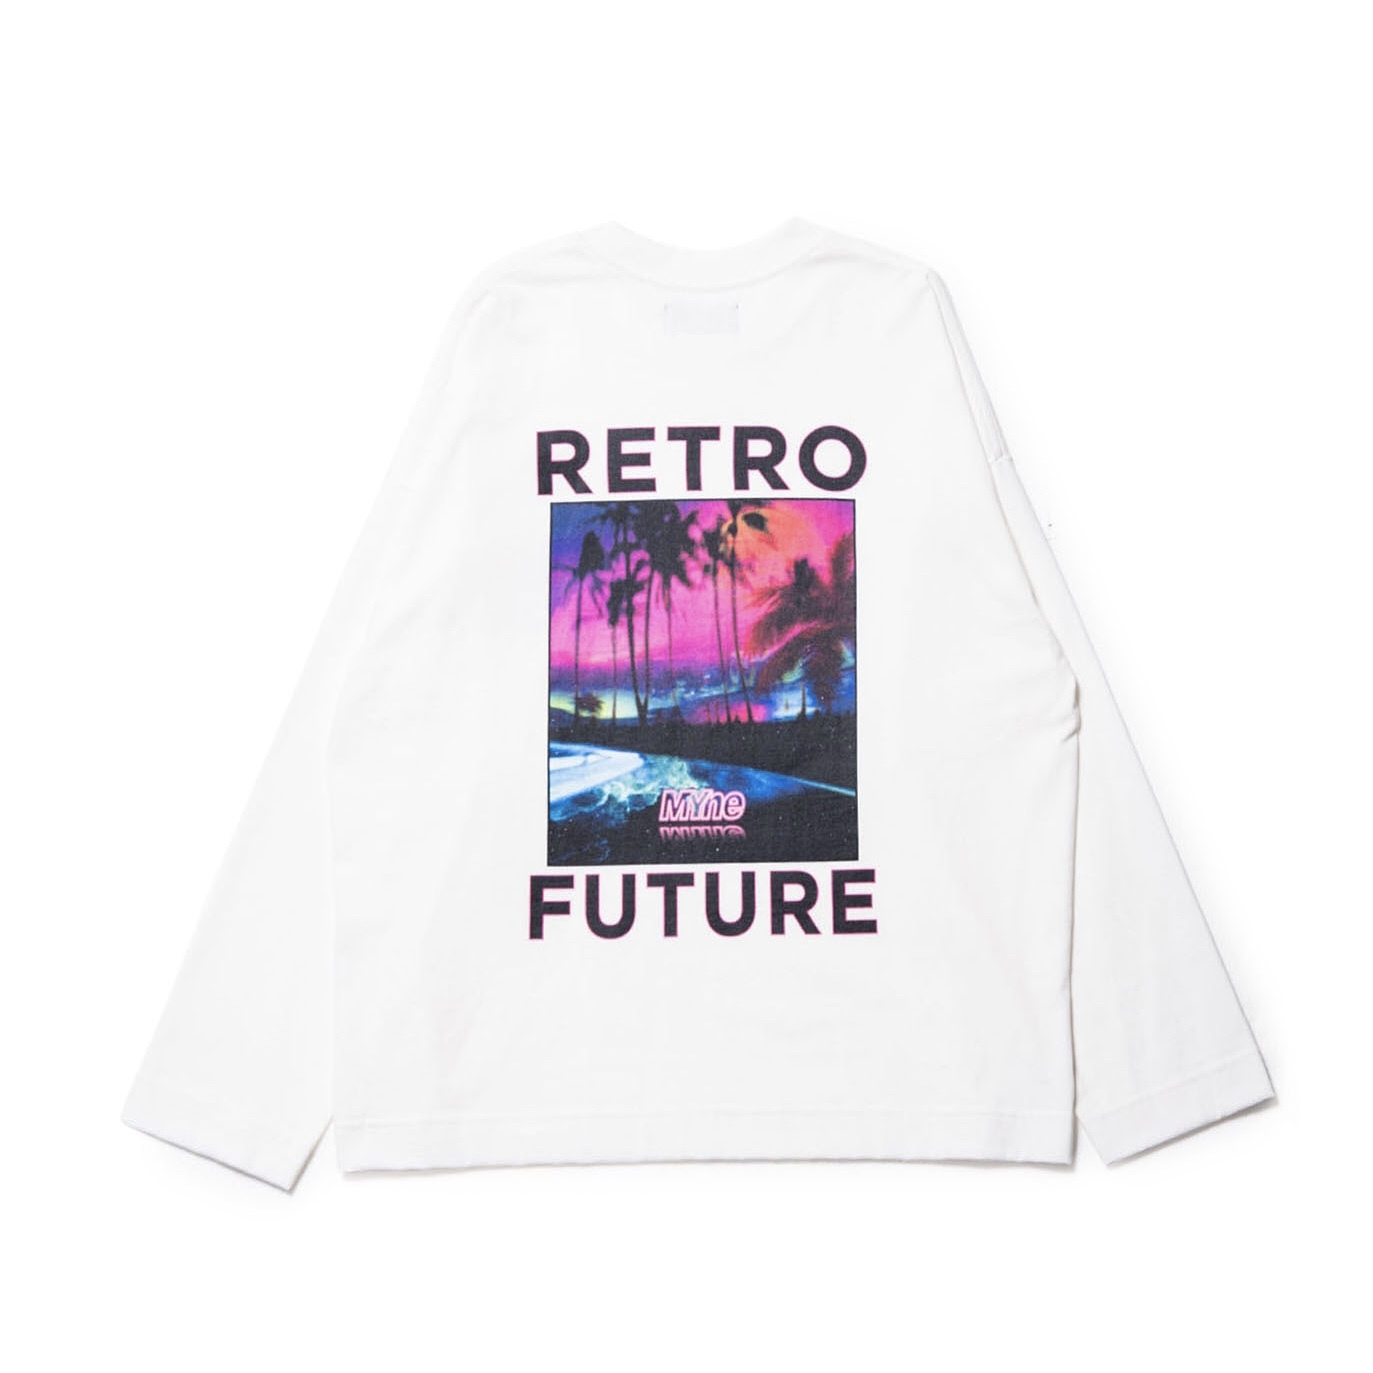 RETRO FUTURE L/S T-shirt / WHITE - 画像2